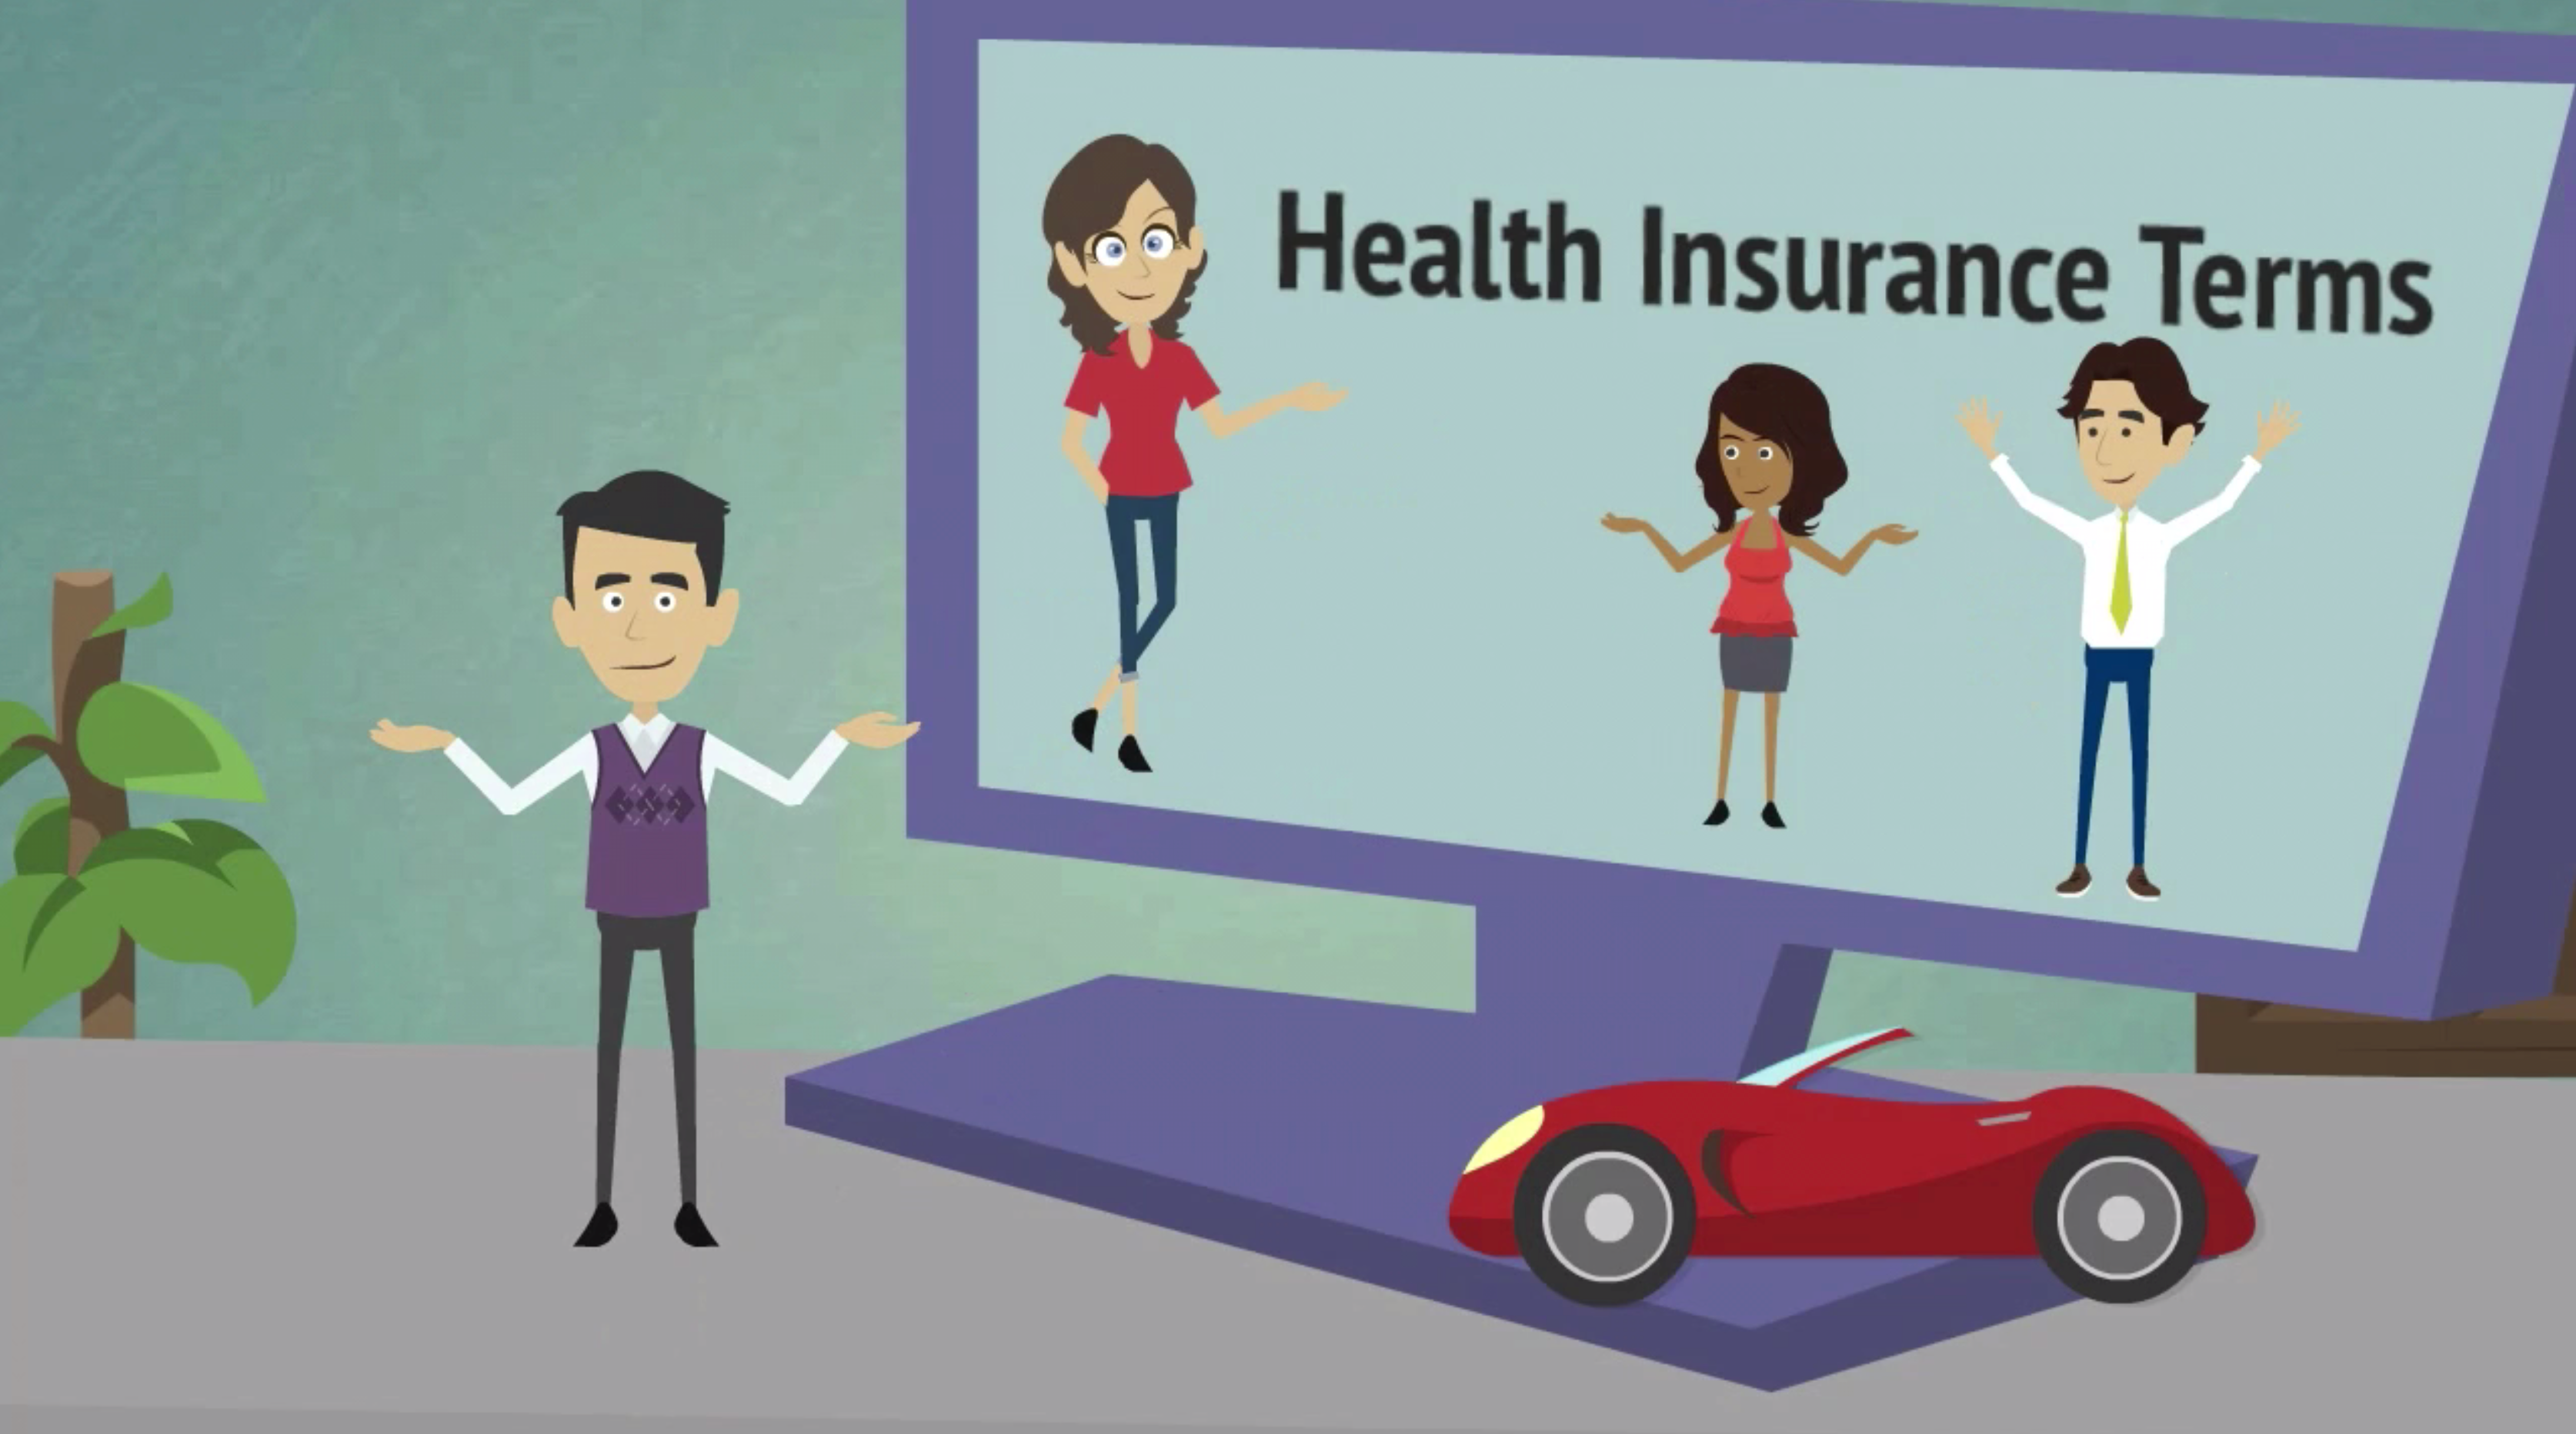 Having health insurance is one thing, understanding it another